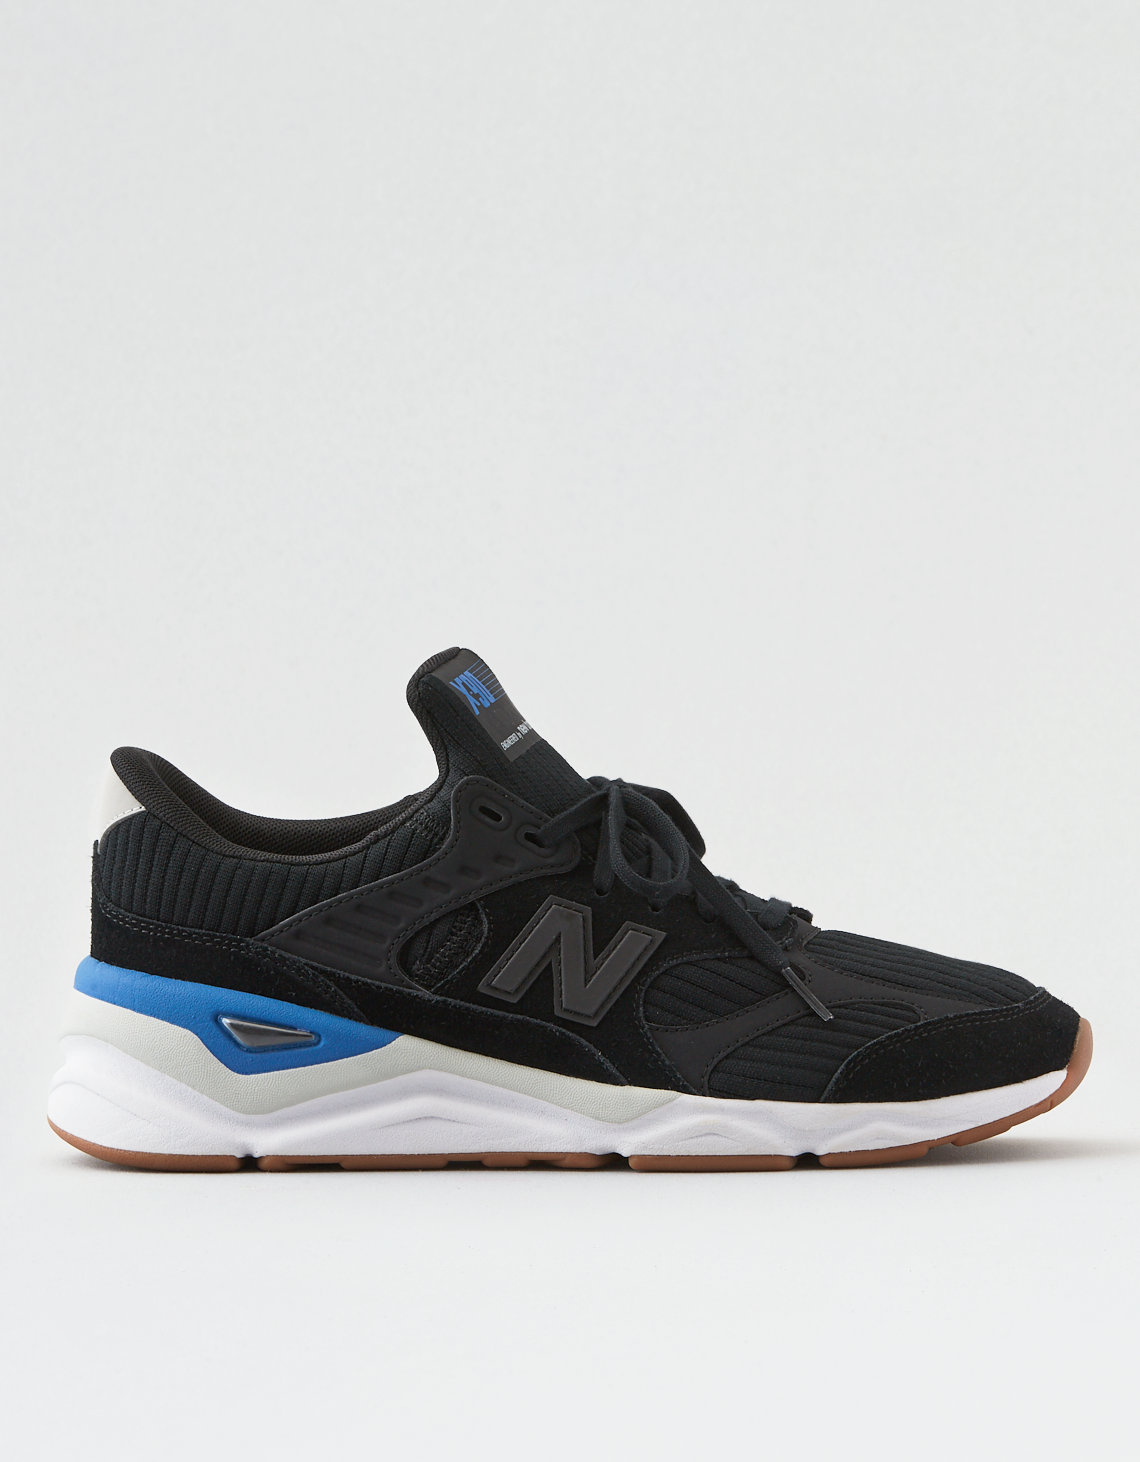 New Balance X-90 Reconstructed Sneaker